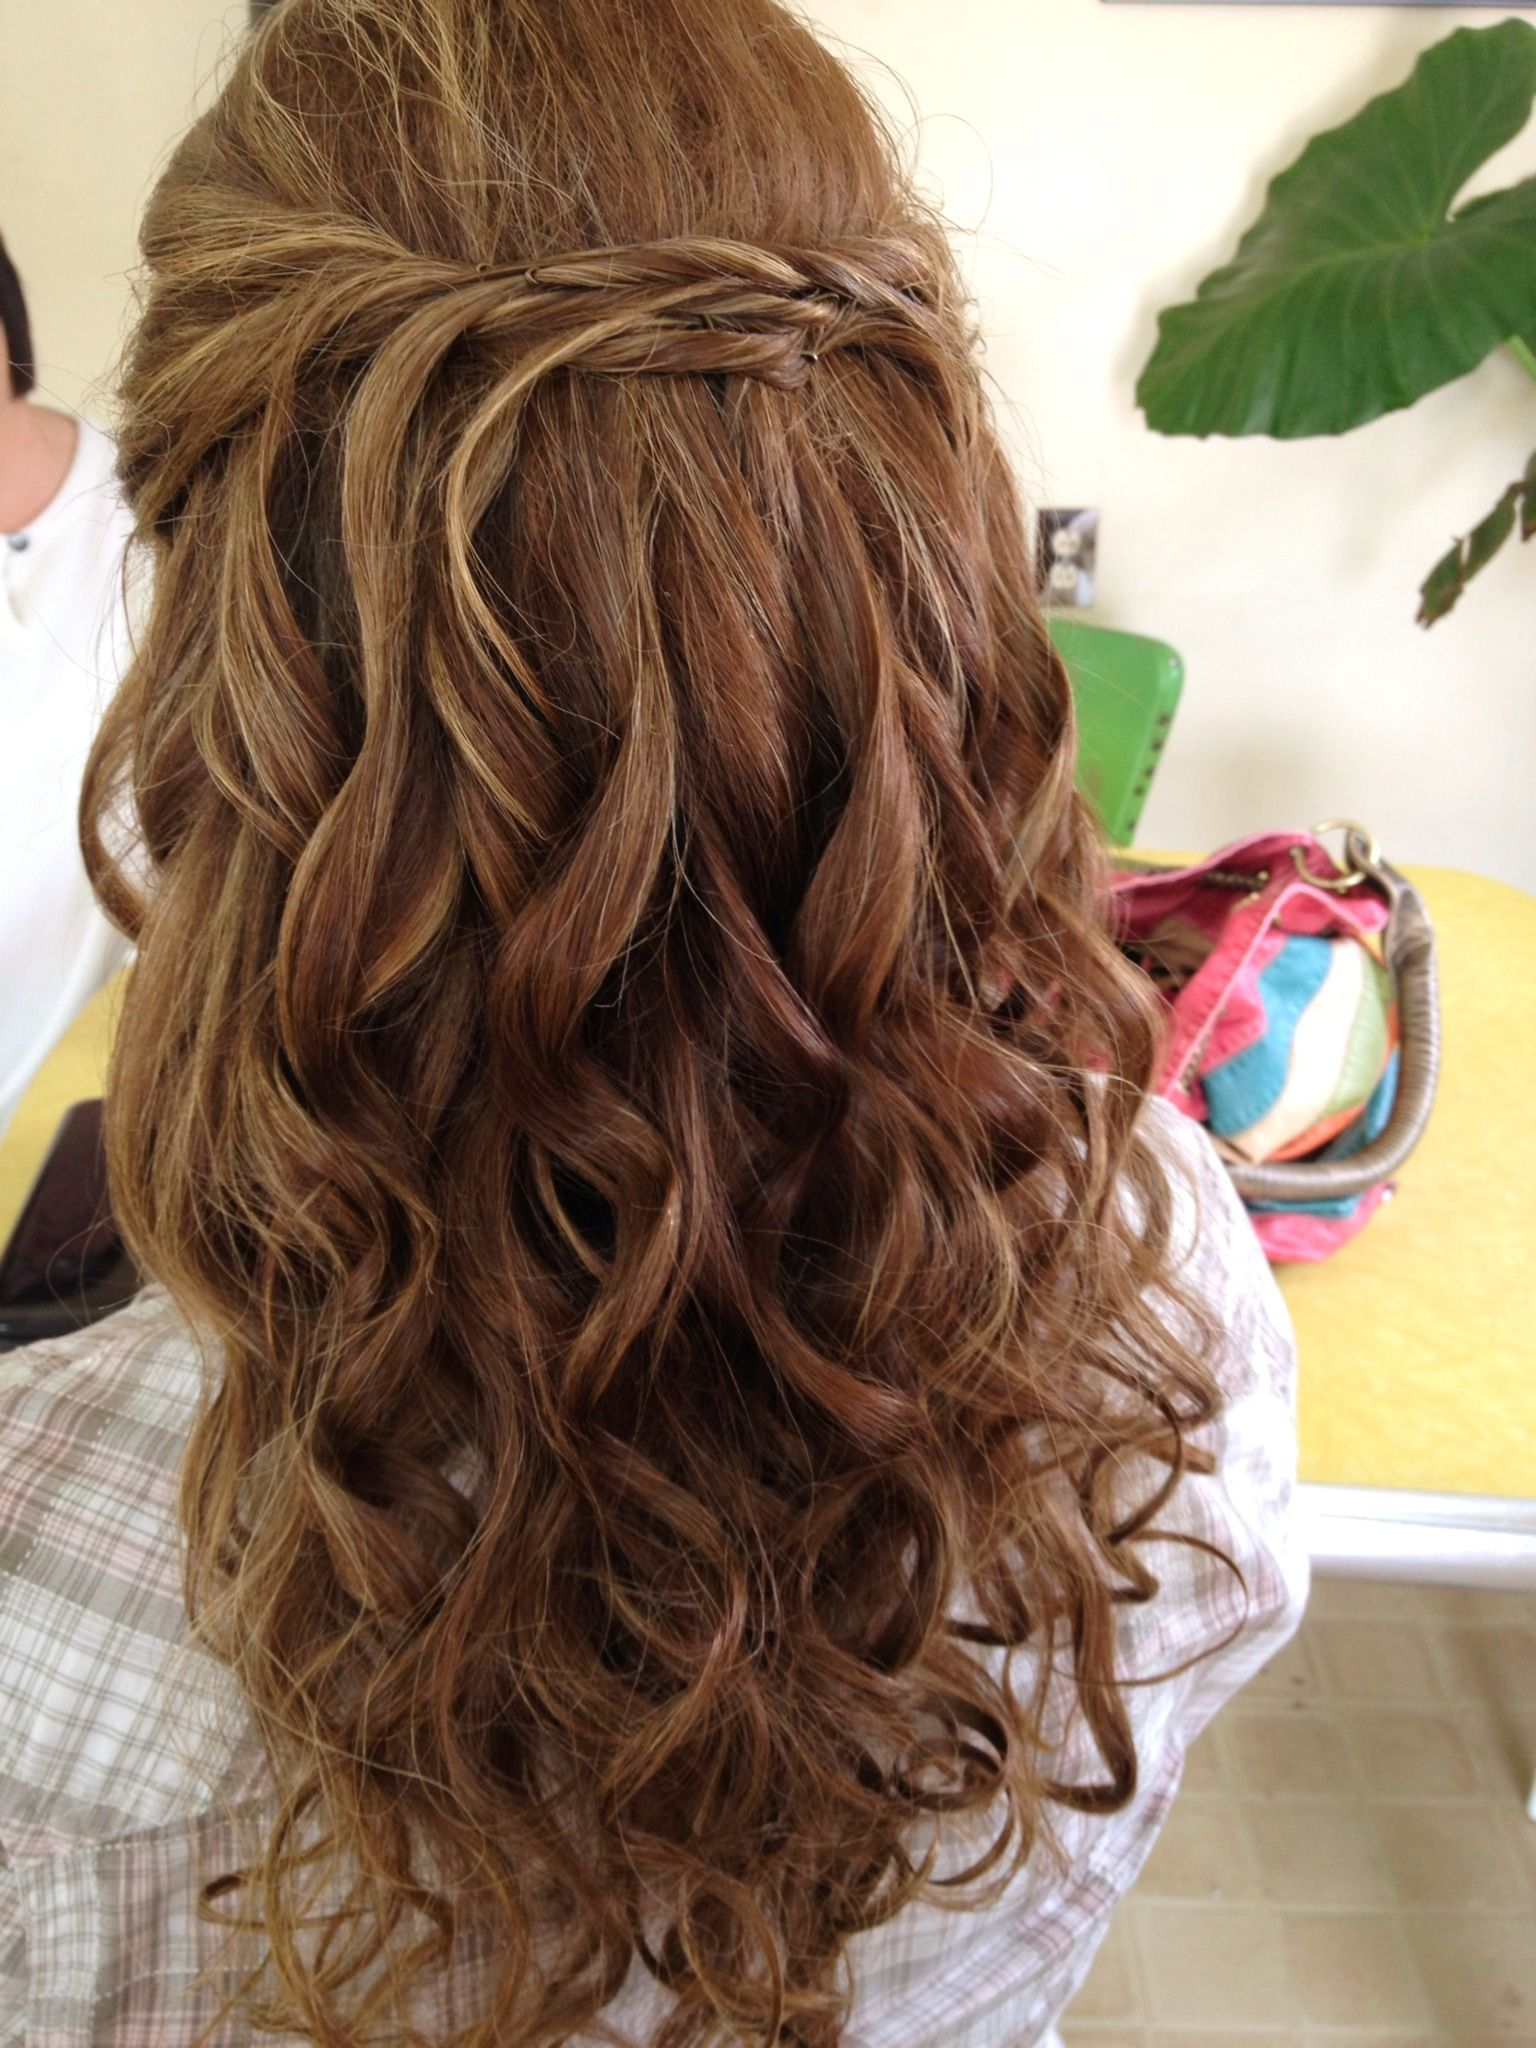 Loose curls with half up micro french twist Bridal updo bridesmaid